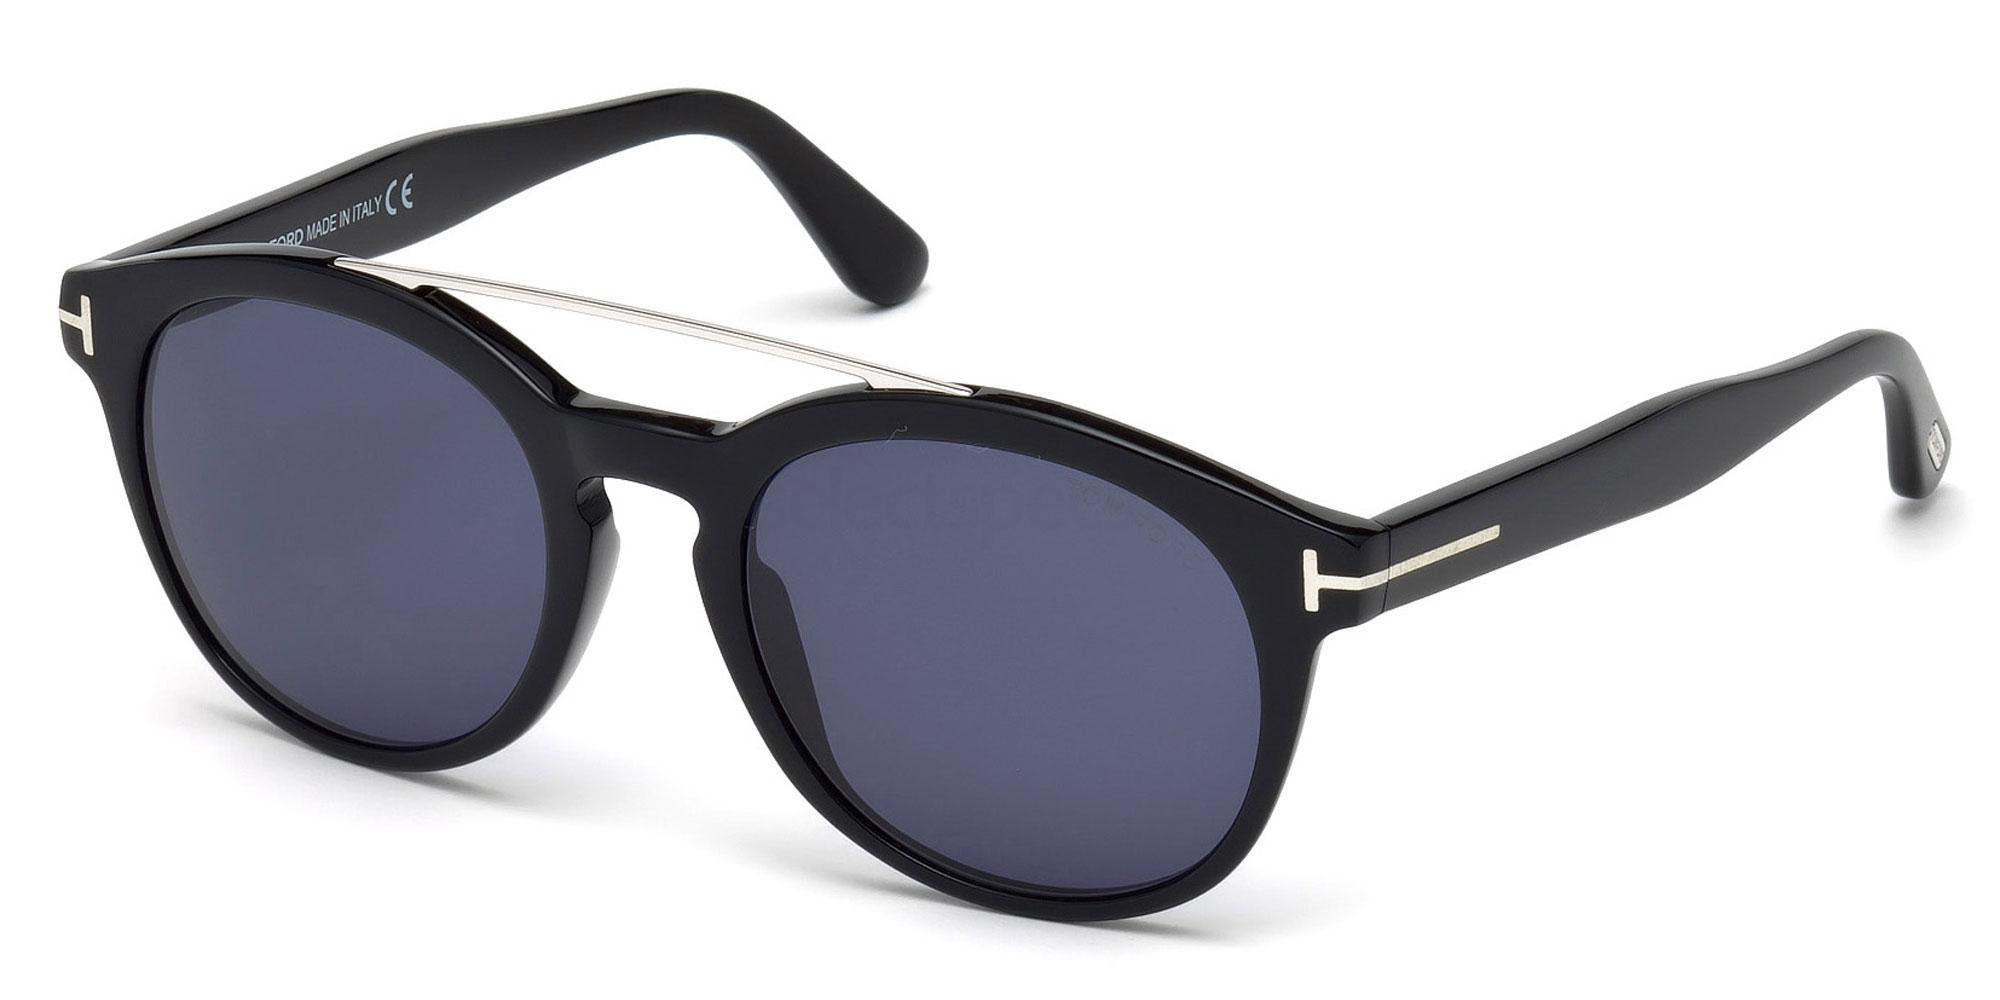 01V FT0515 Sunglasses, Tom Ford